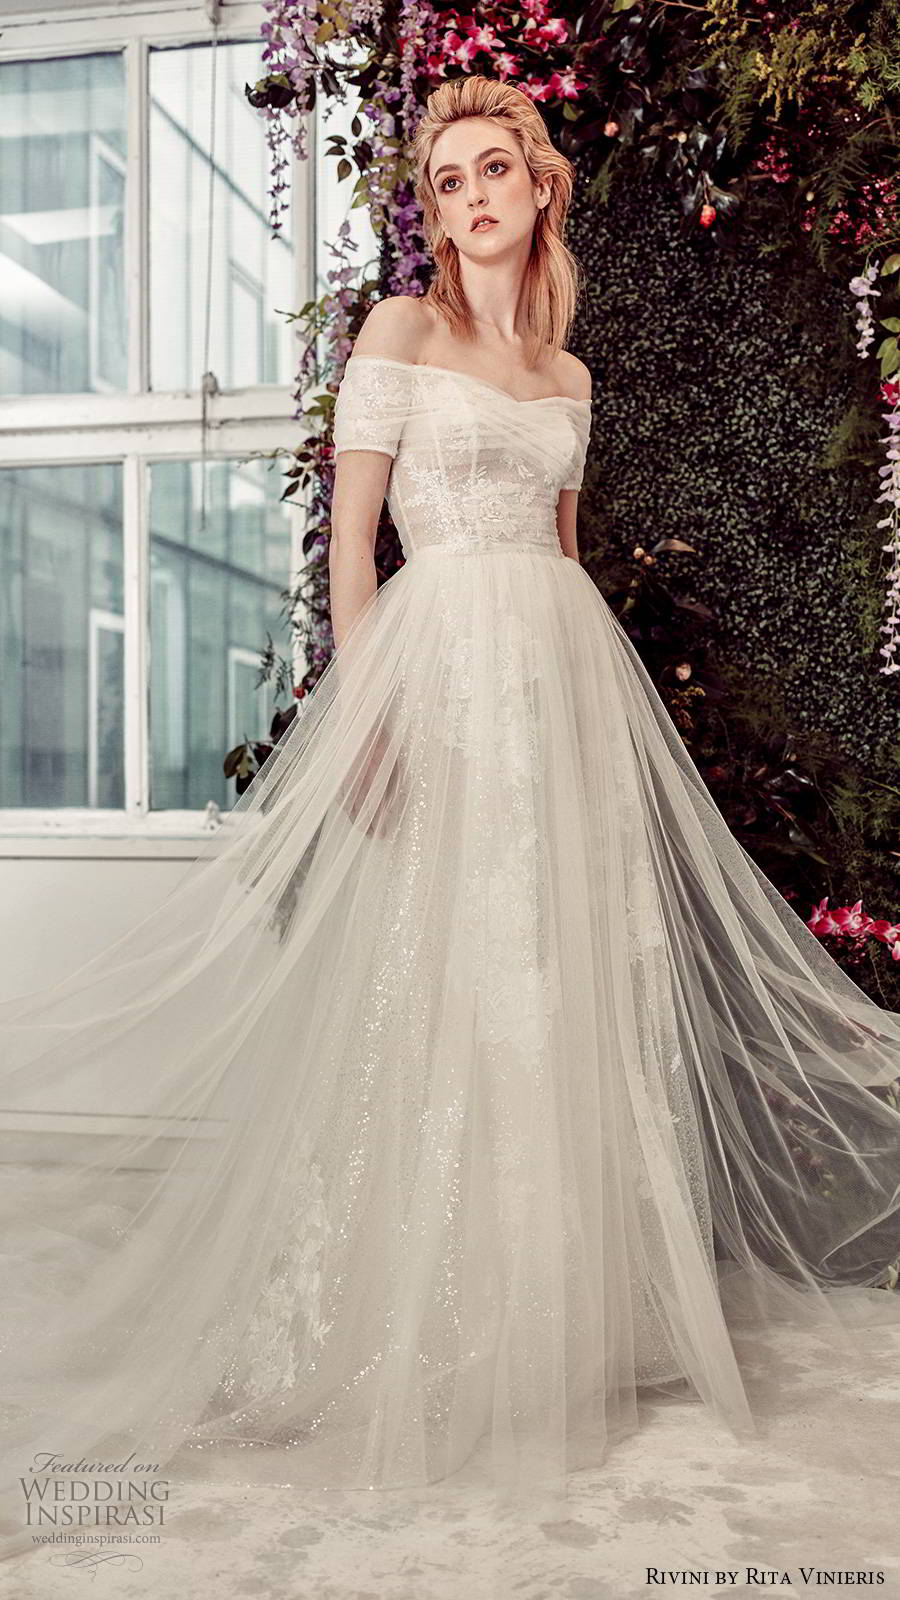 rivini by rita vinieris spring 2020 bridal off shoulder short sleeves semi sweetheart neckline fully embellished sheer overskirt romantic a line ball gown wedding dress chapel train (7) mv